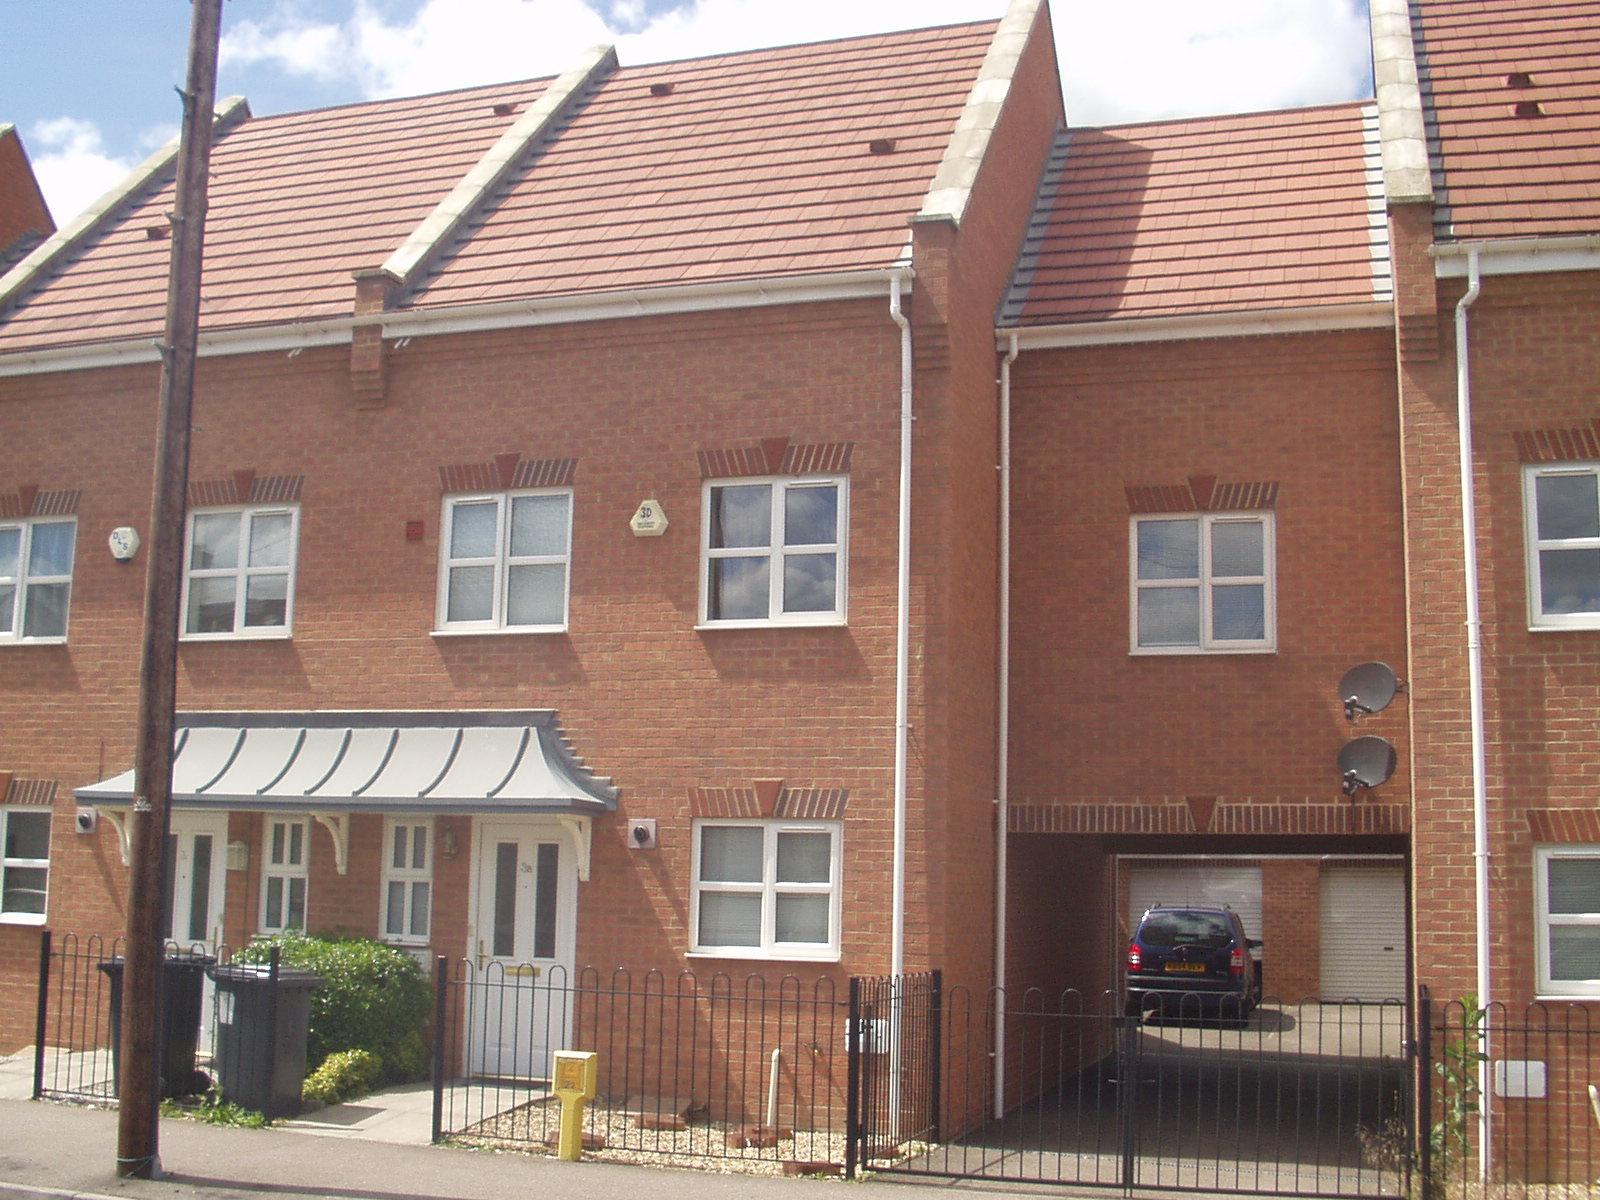 3 bedroom townhouse for rent in bedford rentals lettings for 3 bedroom townhouse